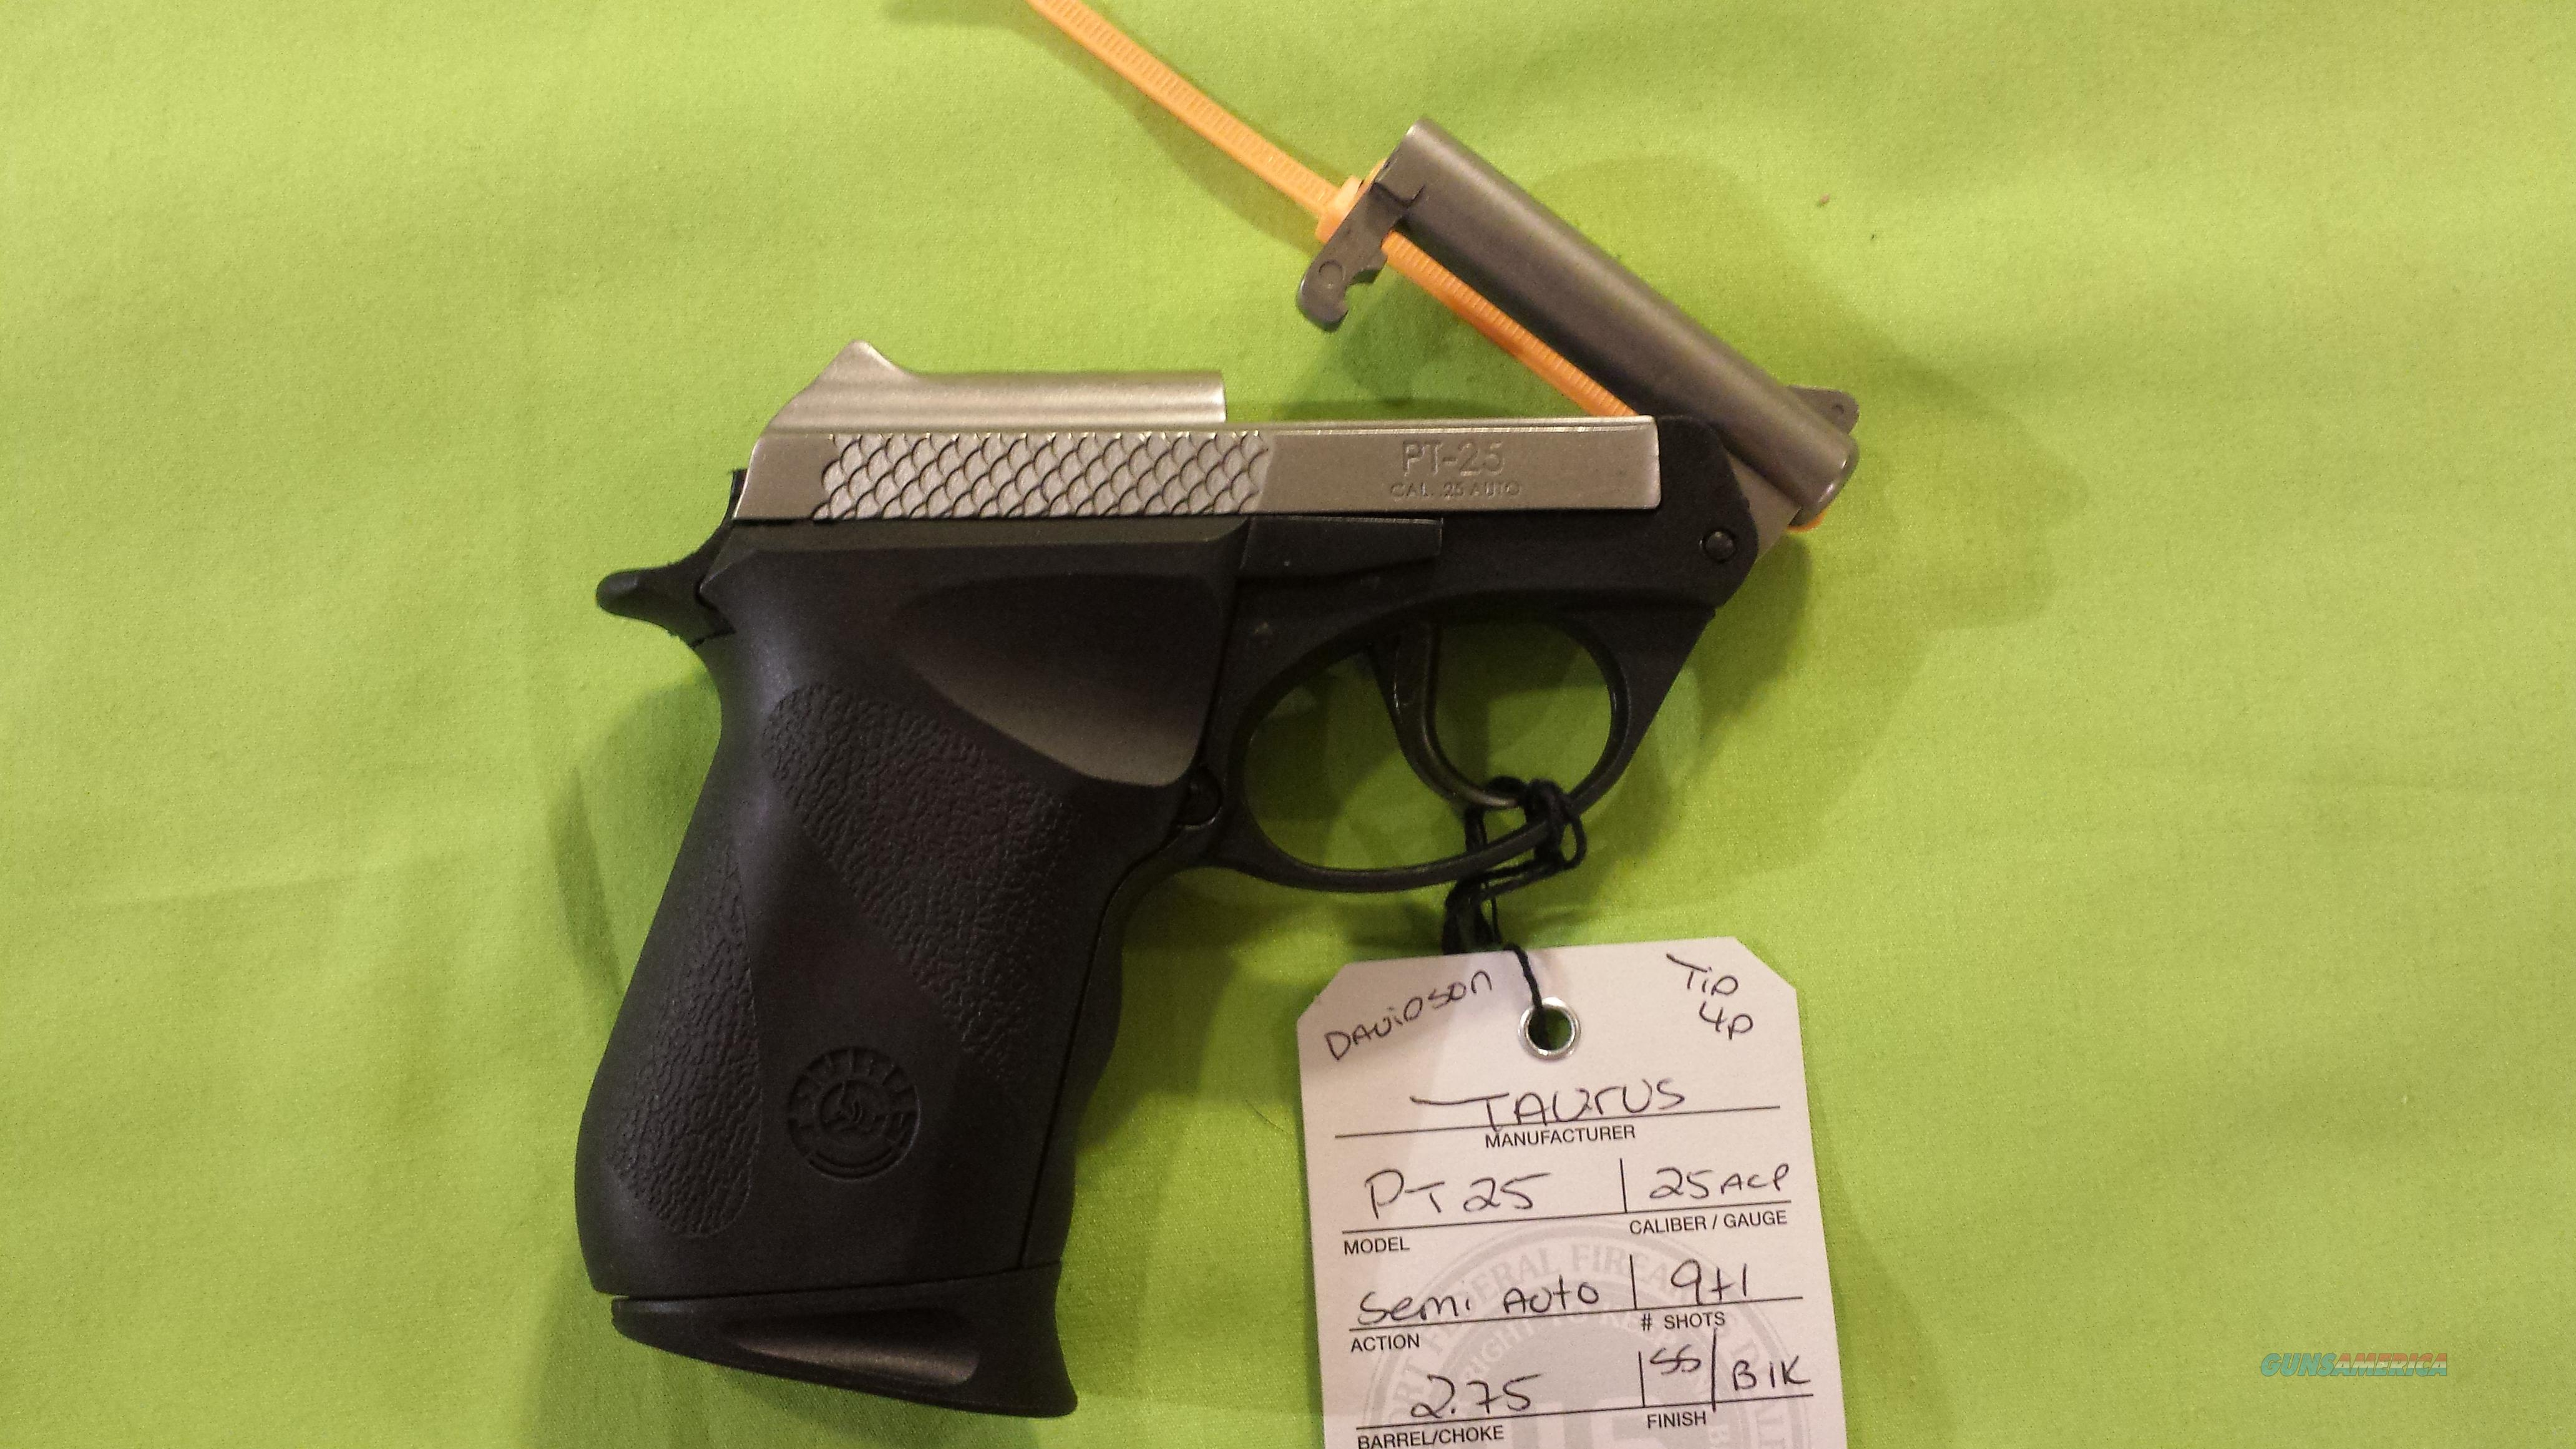 TAURUS PT25 PT 25 25ACP TWO TONE 9RD TIP UP BARREL  Guns > Pistols > Taurus Pistols/Revolvers > Pistols > Polymer Frame